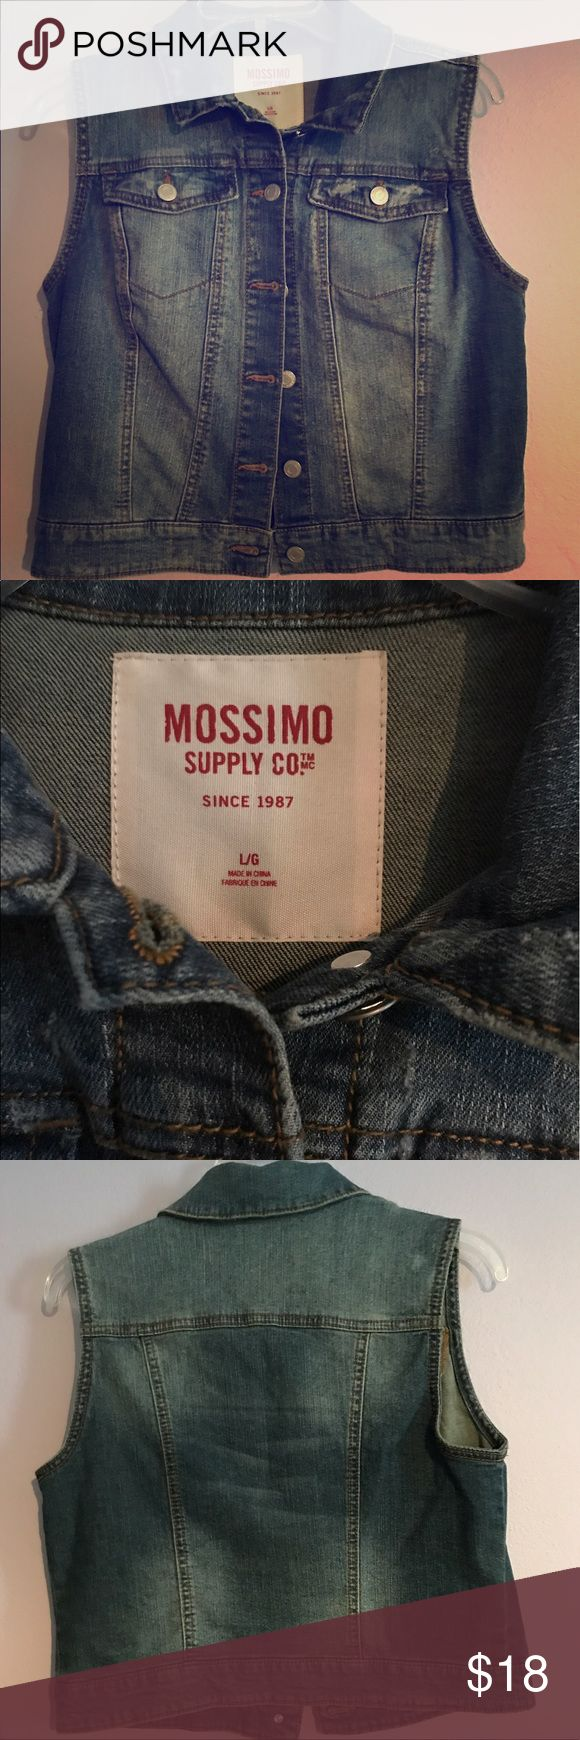 Mossimo sleeveless denim jacket Above the hips, lightweight denim jacket. Perfect for summer days or layered year-round! Match this with a button down plaid for a country vibe, or dress it up with a sundress and flats! 😍 Mossimo Supply Co. Jackets & Coats Jean Jackets